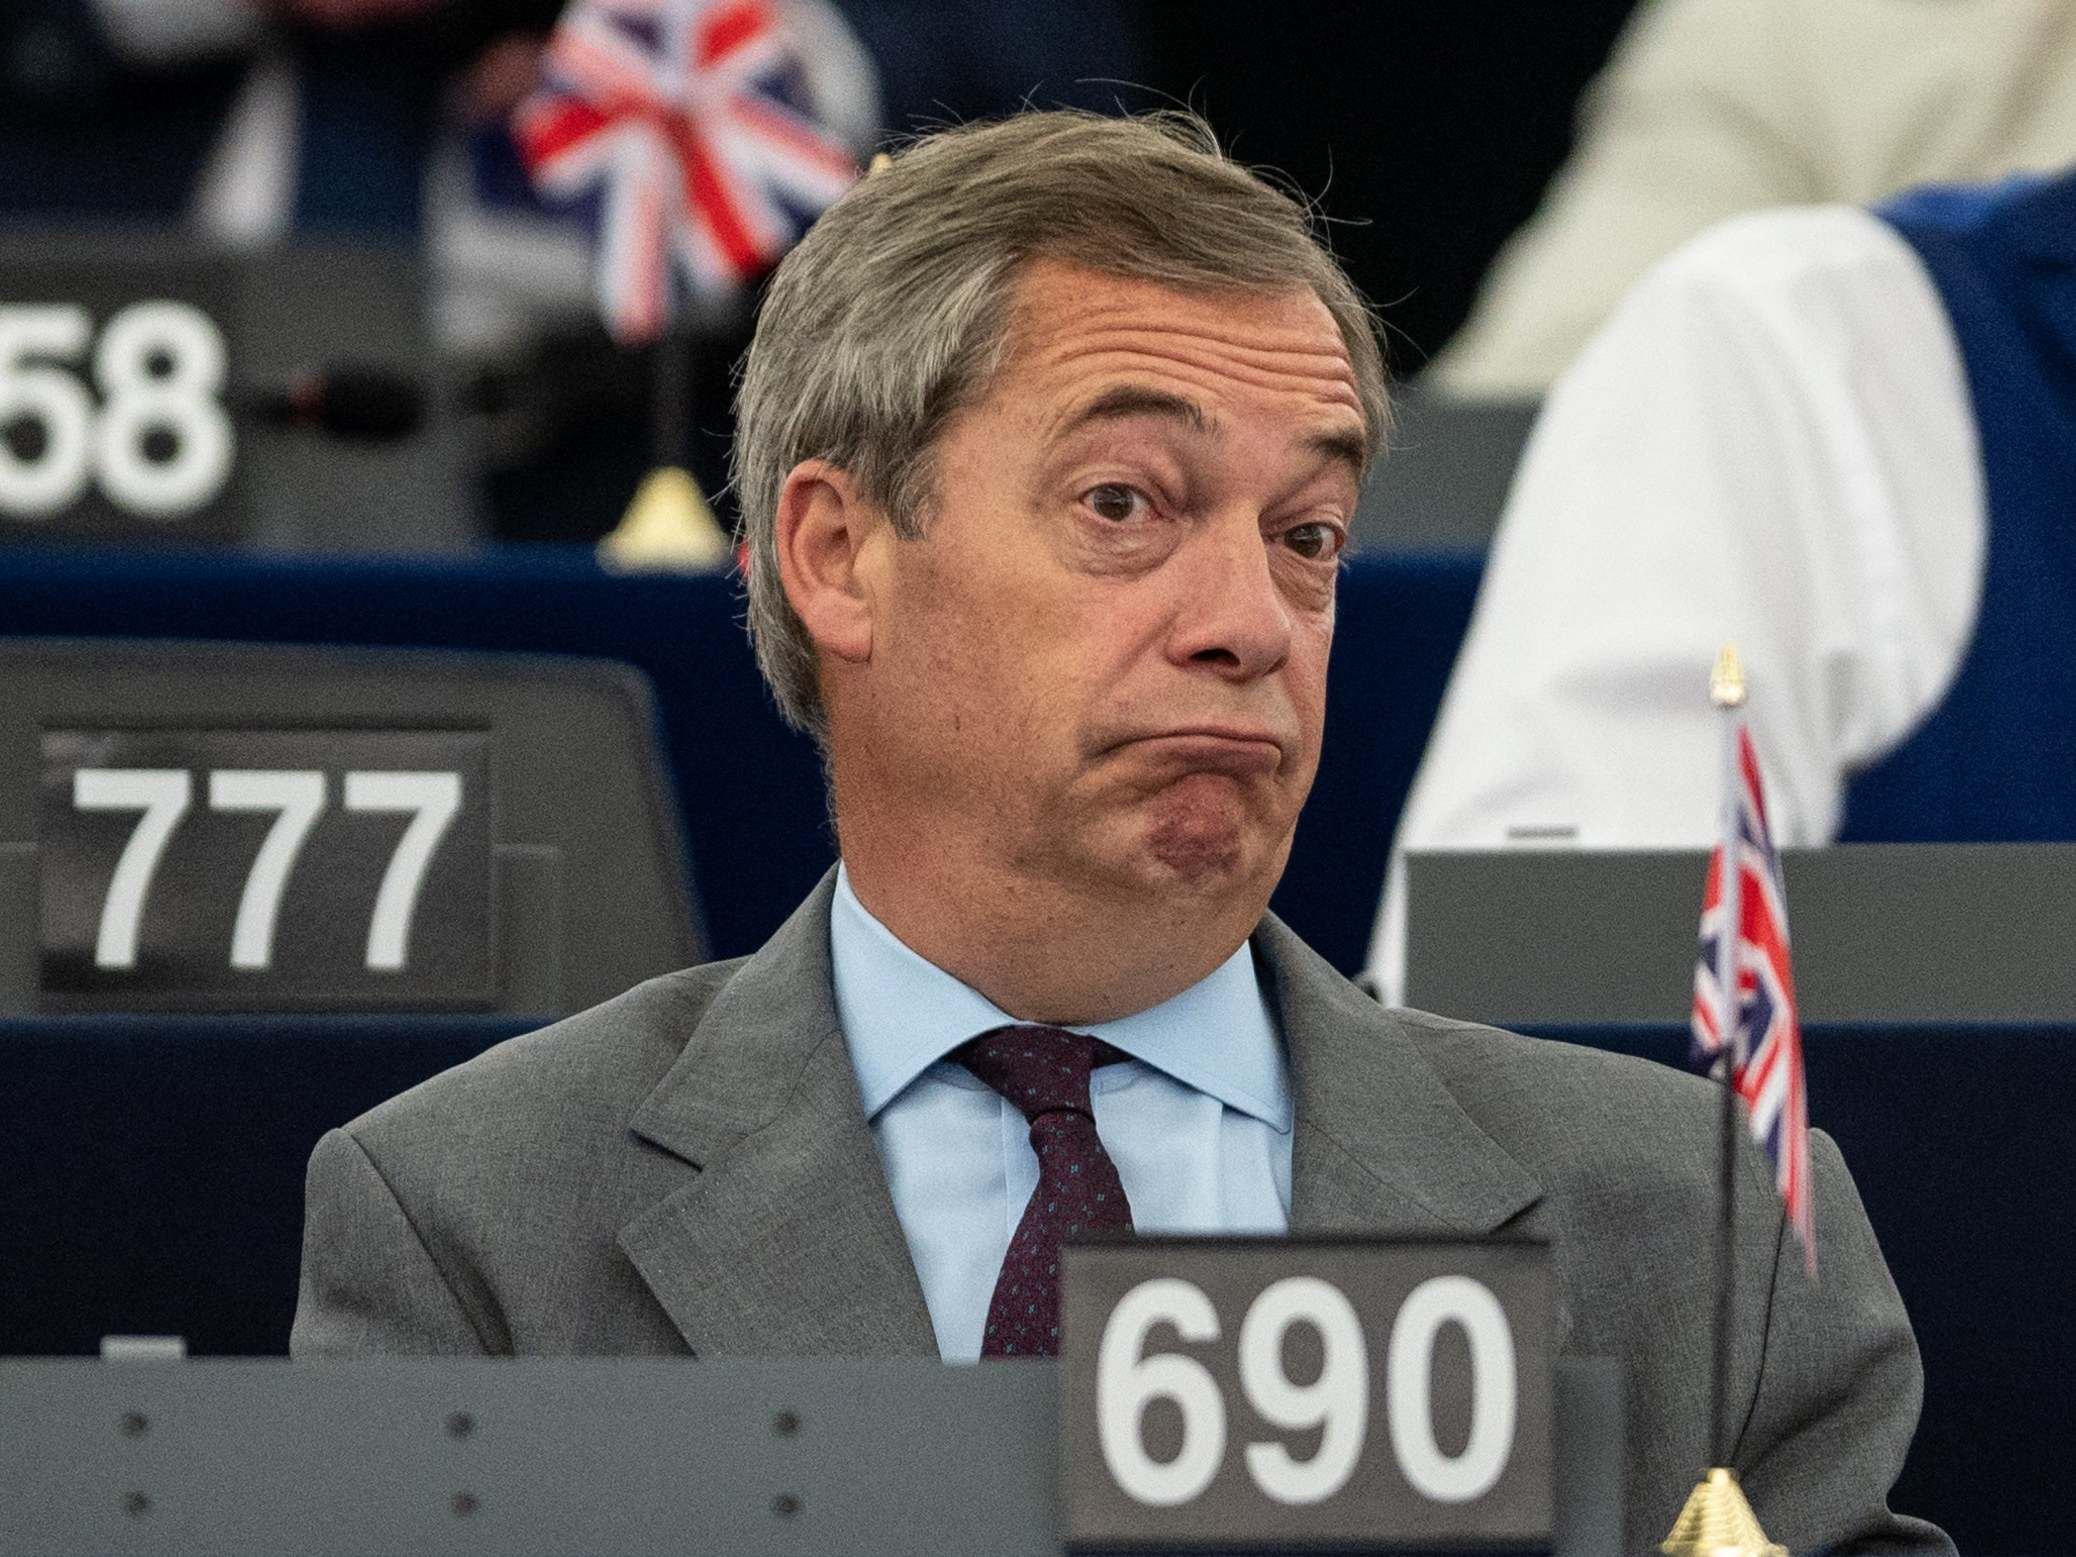 Nigel Farage complains about narrow margin of victory for new EU chi…